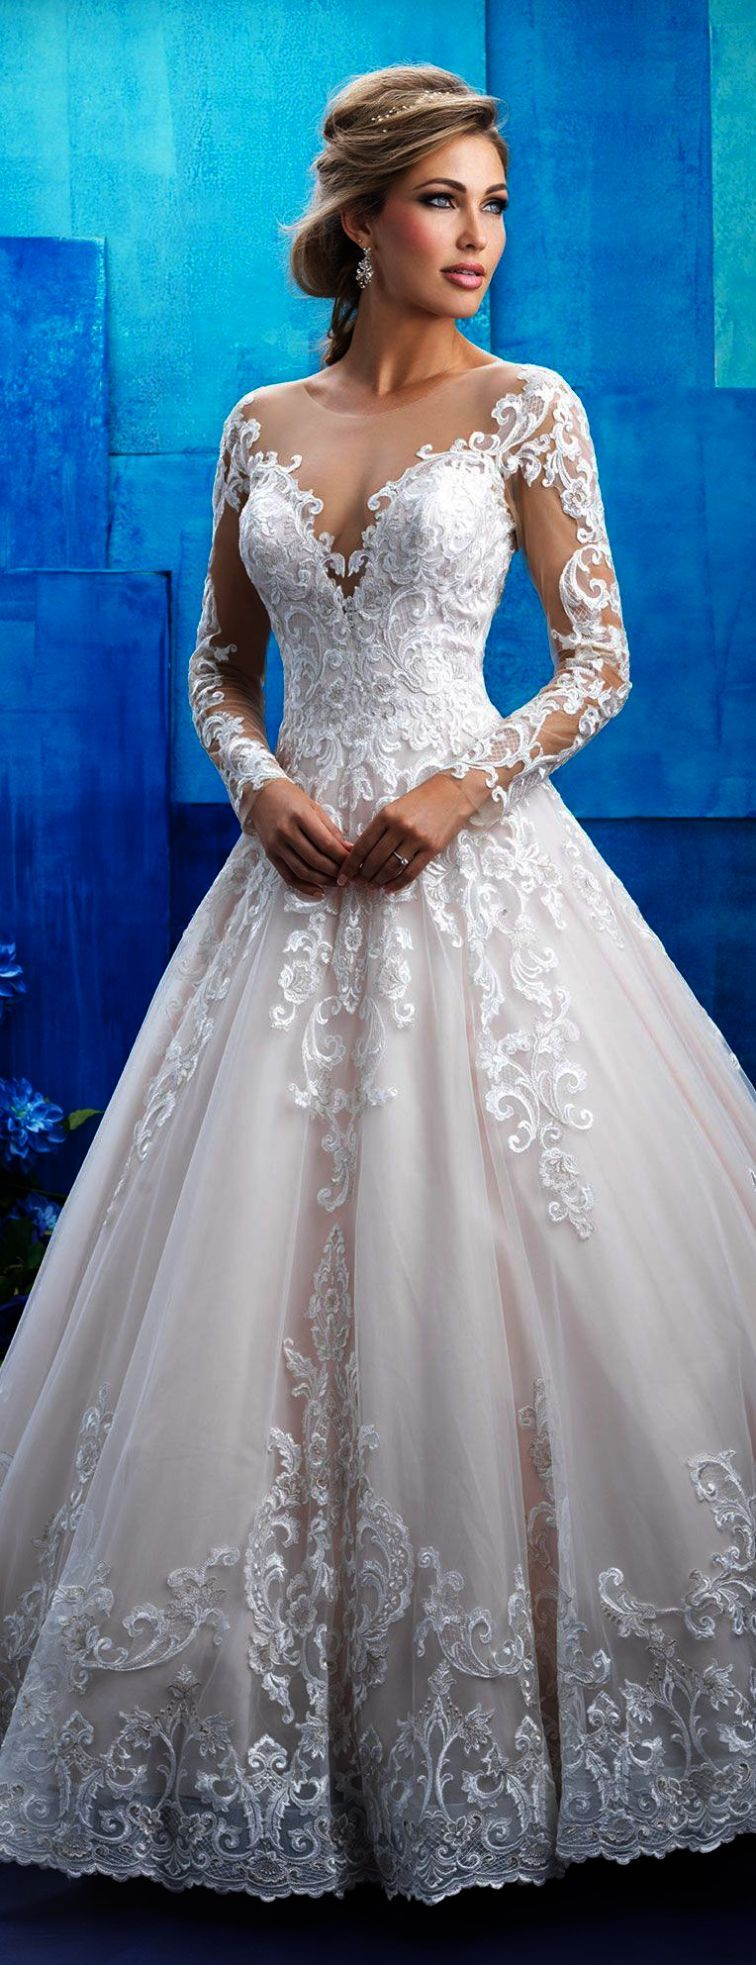 Lace wedding dress v neck november 2018 Lace Wedding Dresses Pnina Tornai Lace Wedding Gown Design  Wedding